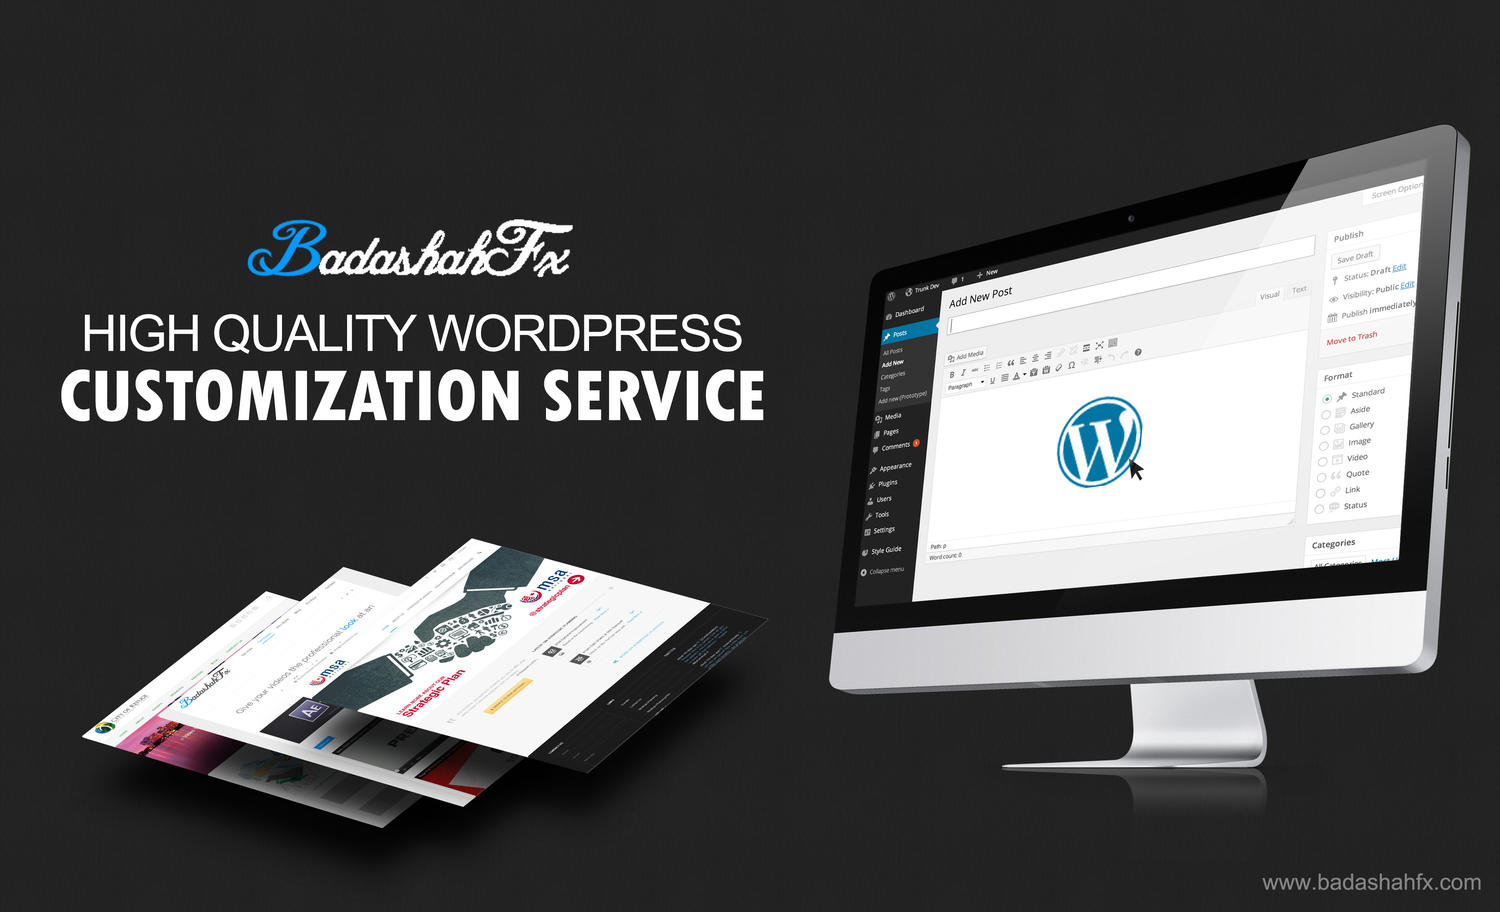 High Quality Wordpress Website Customization by badashahfx - 37109